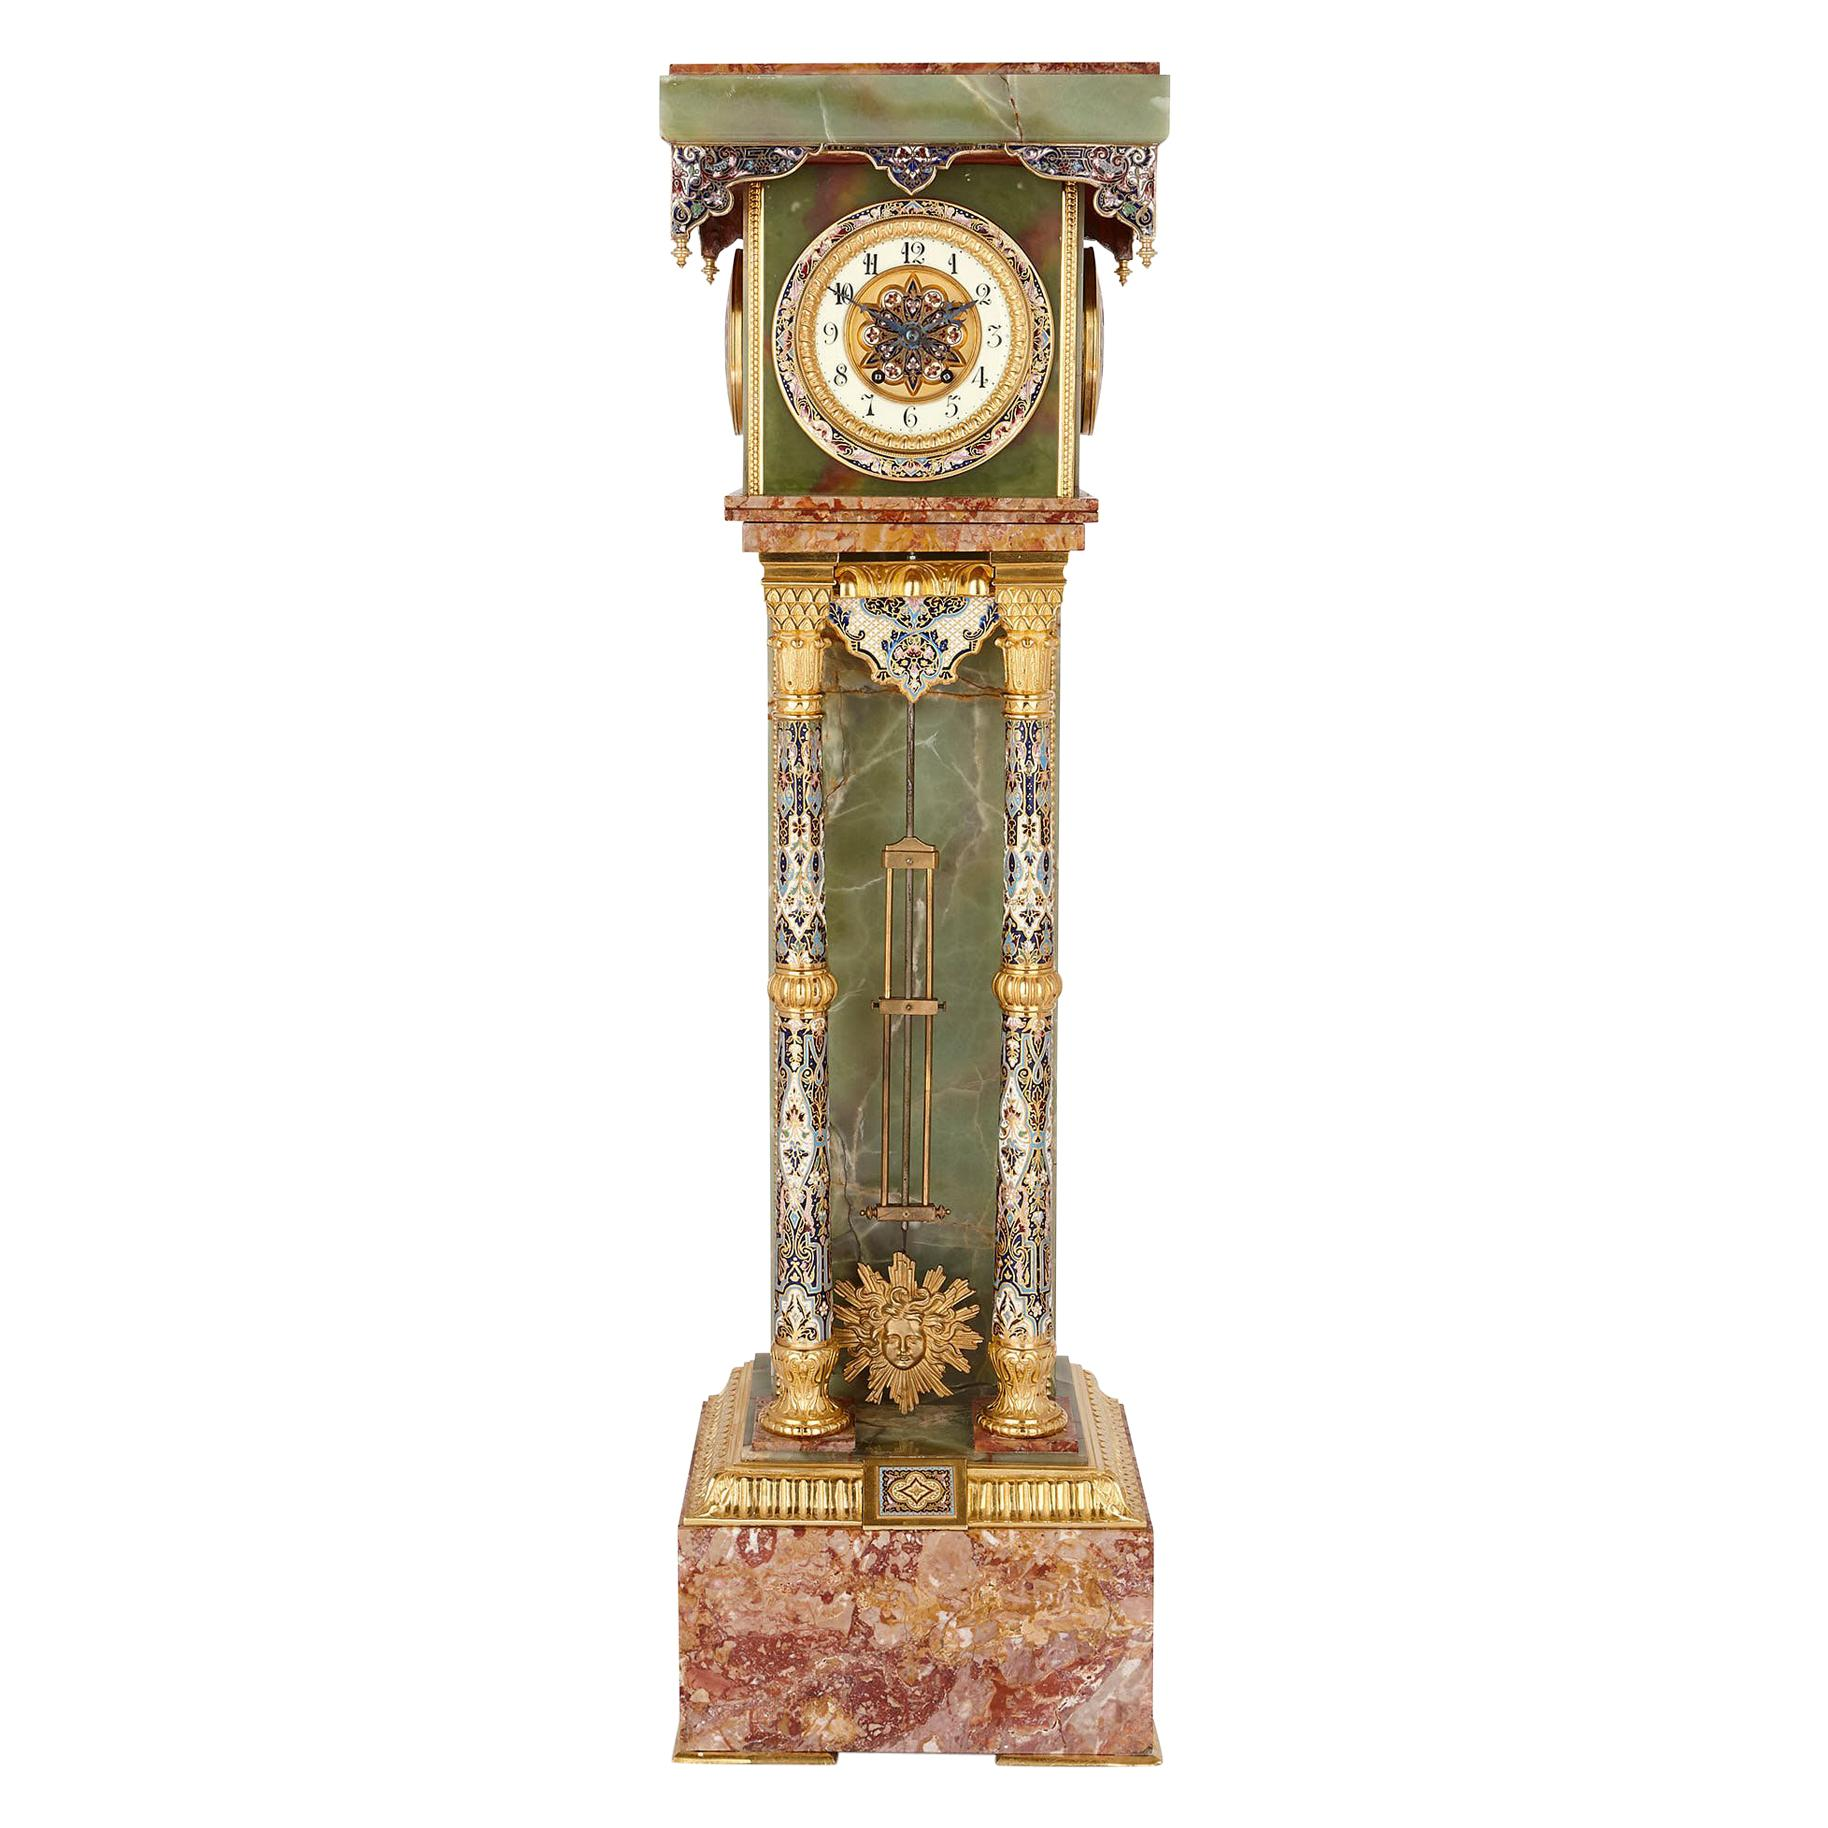 Onyx and Marble Longcase Clock with Enamel and Gilt Bronze Mounts